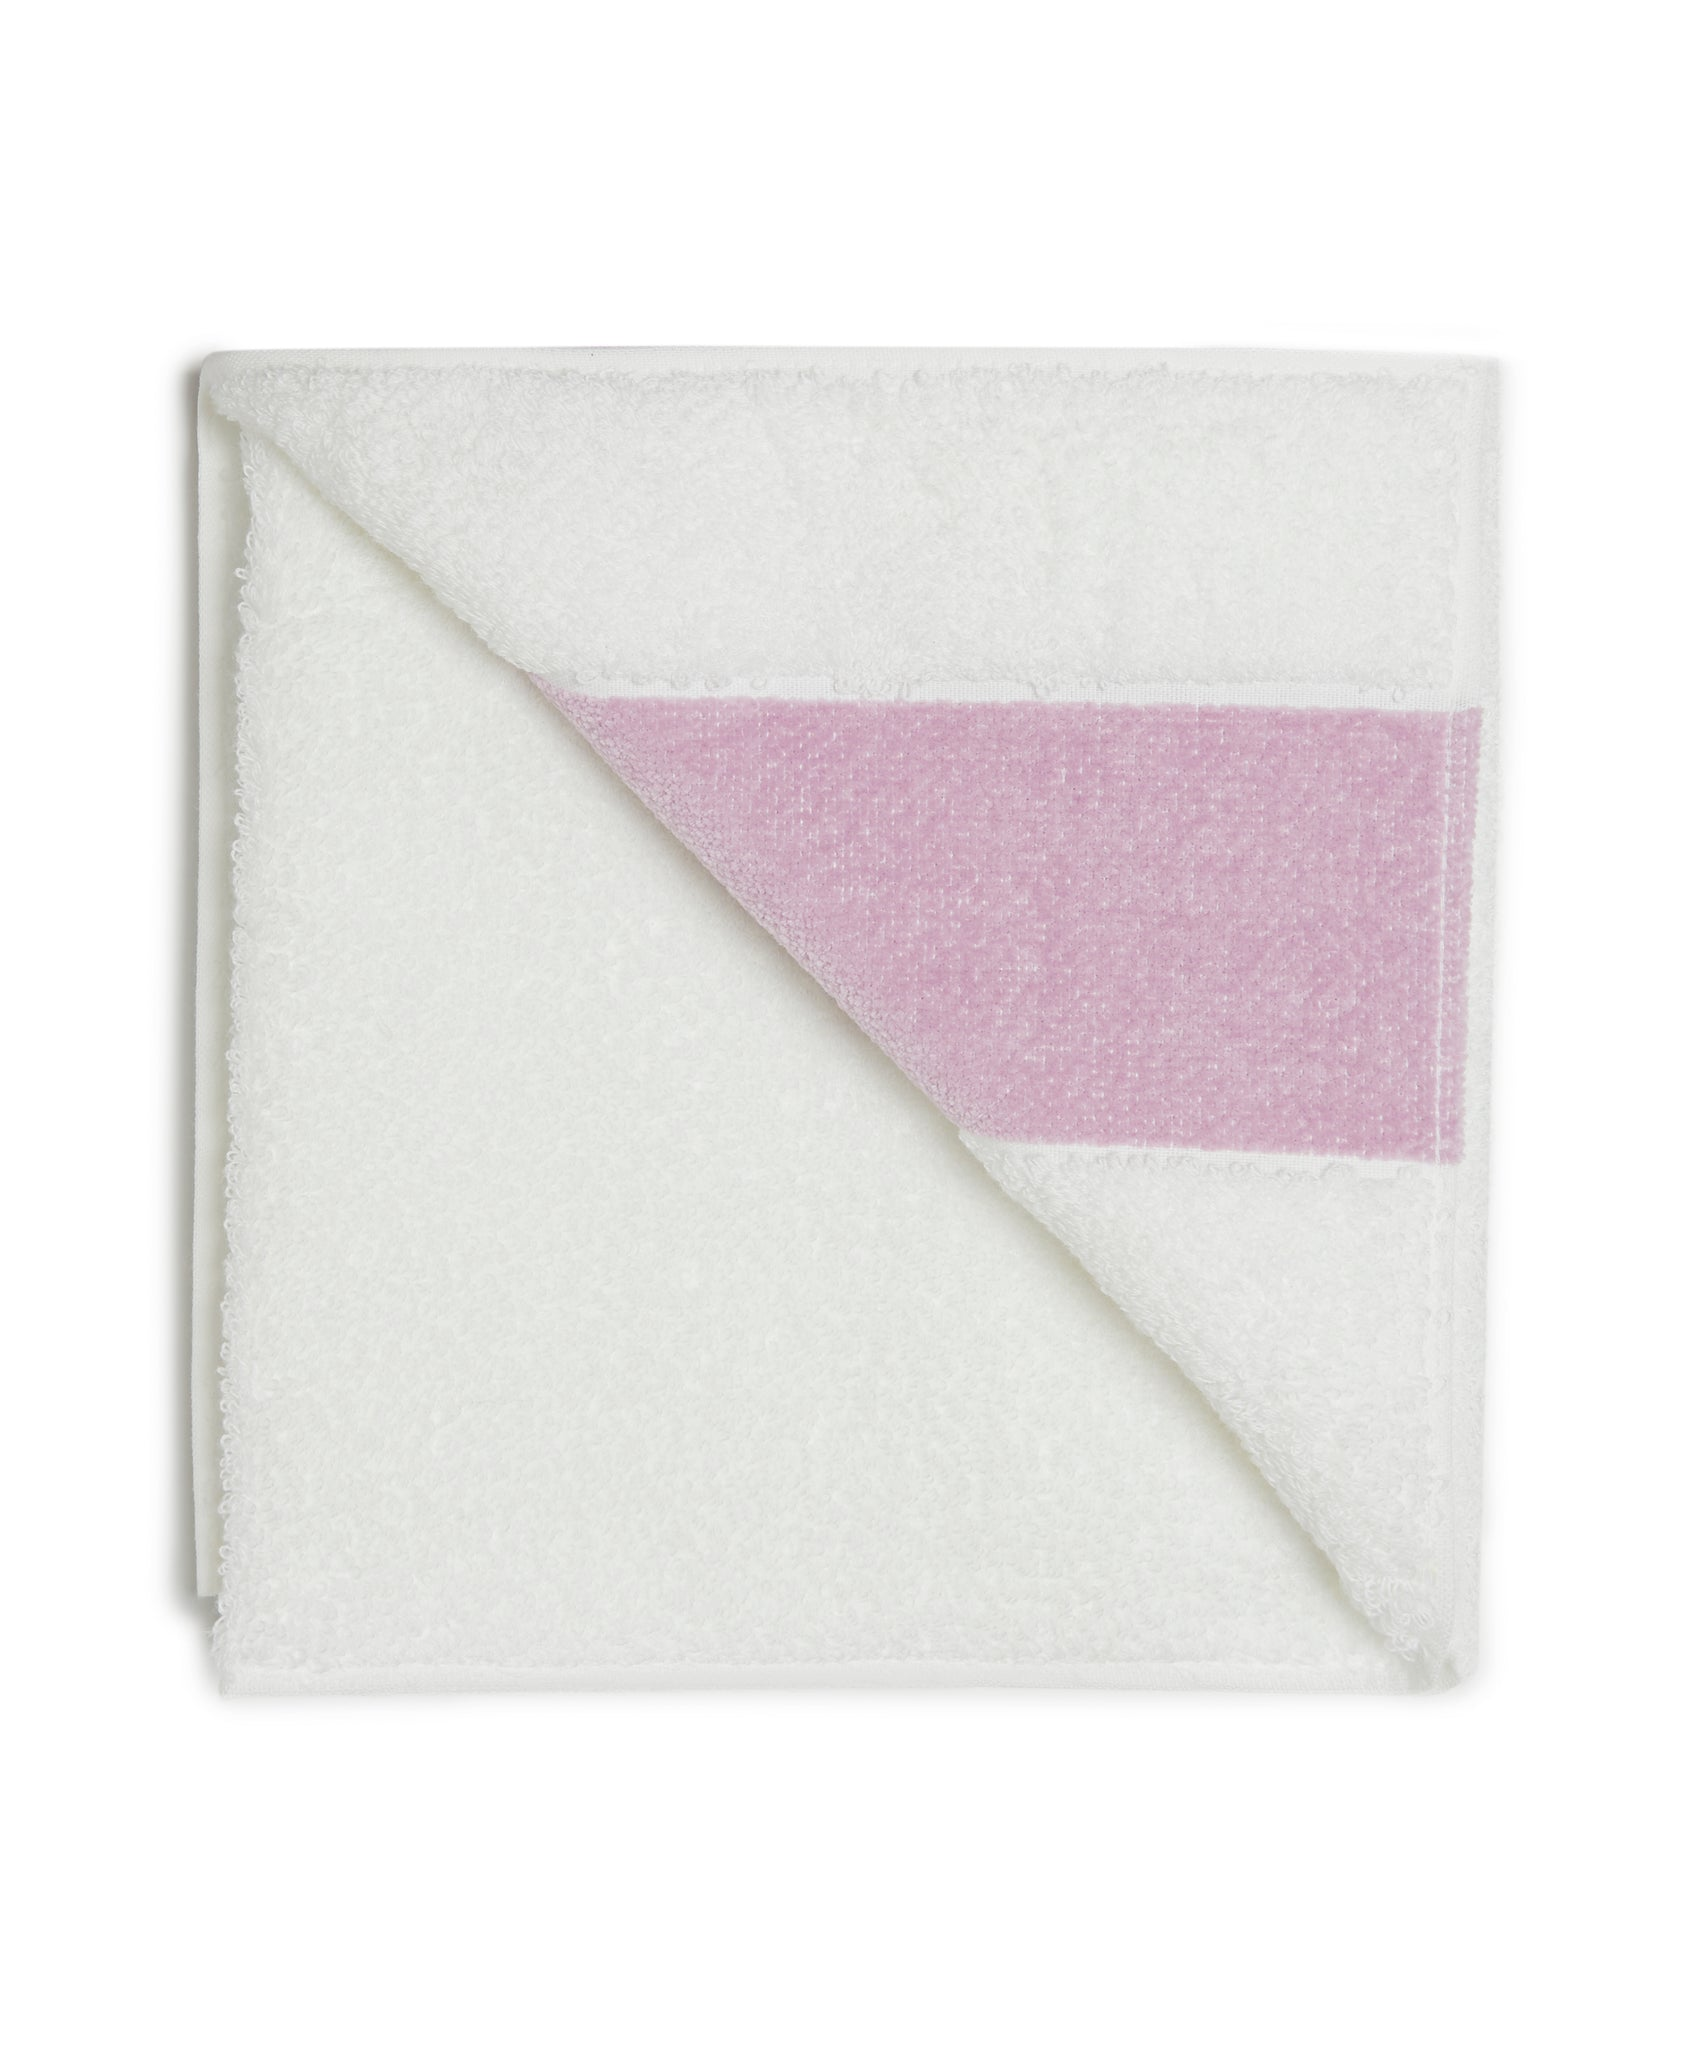 Exclusiv Towel (Tender Lilac) by Feiler